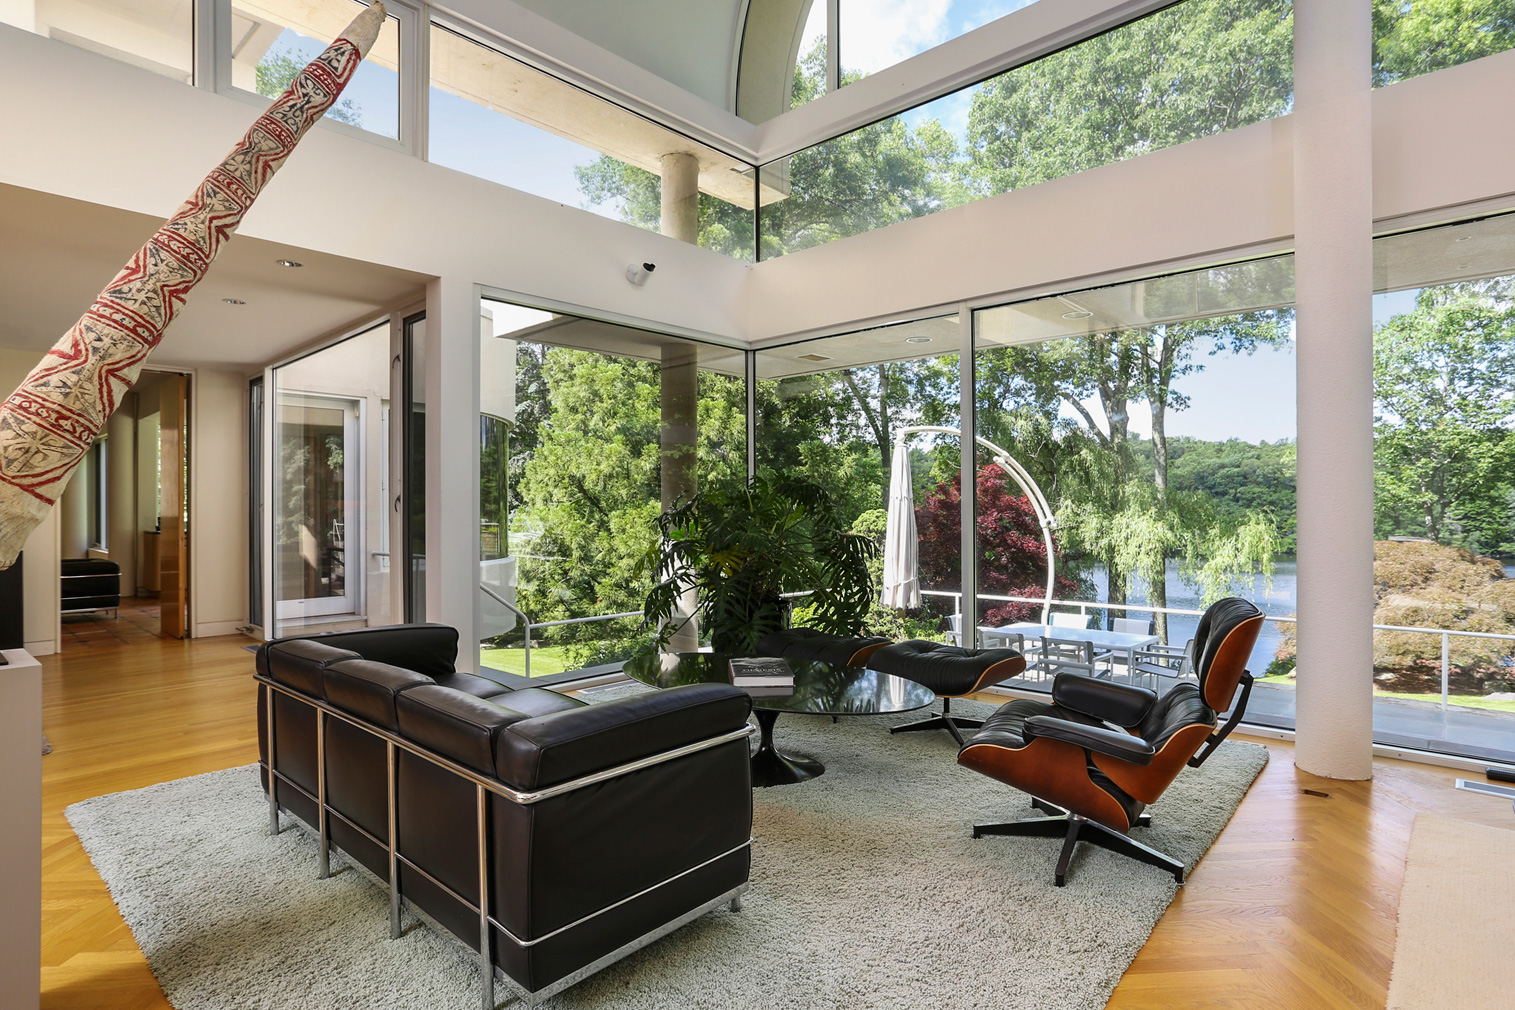 MOMA curator's gallery home for sale in New York